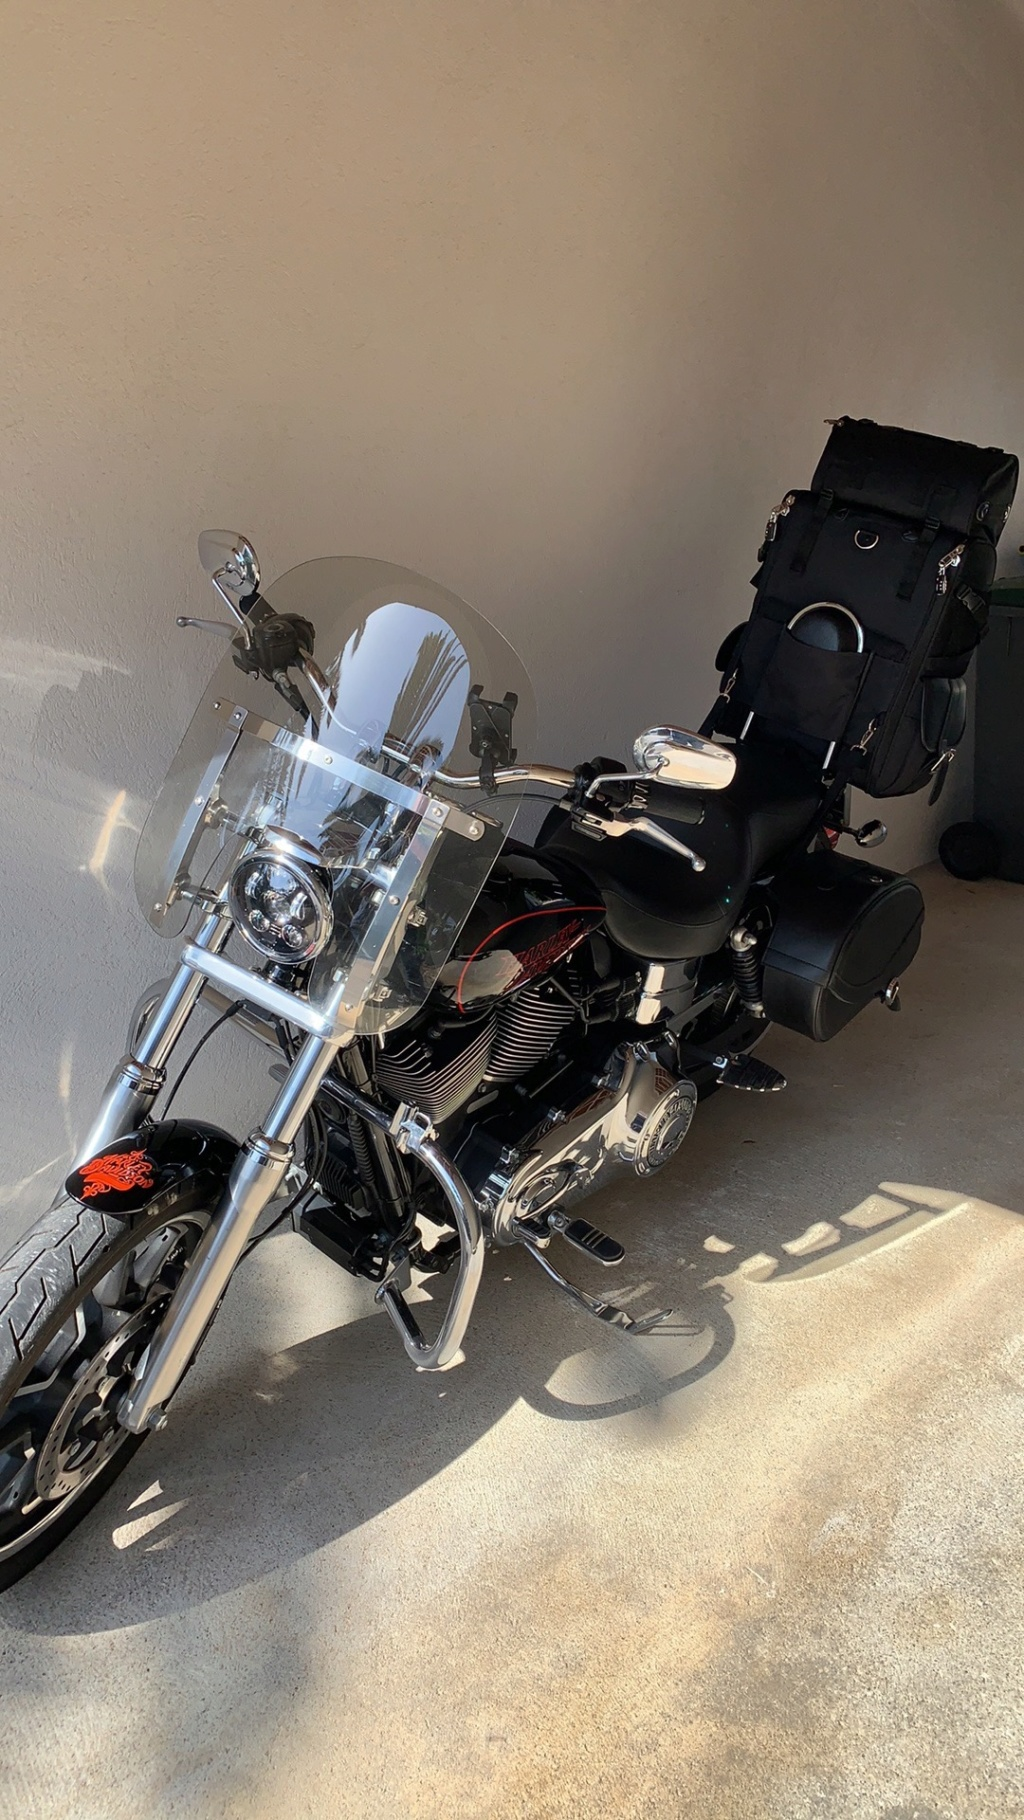 Quel sac pour Sissy bar ? - Page 2 Img_4011